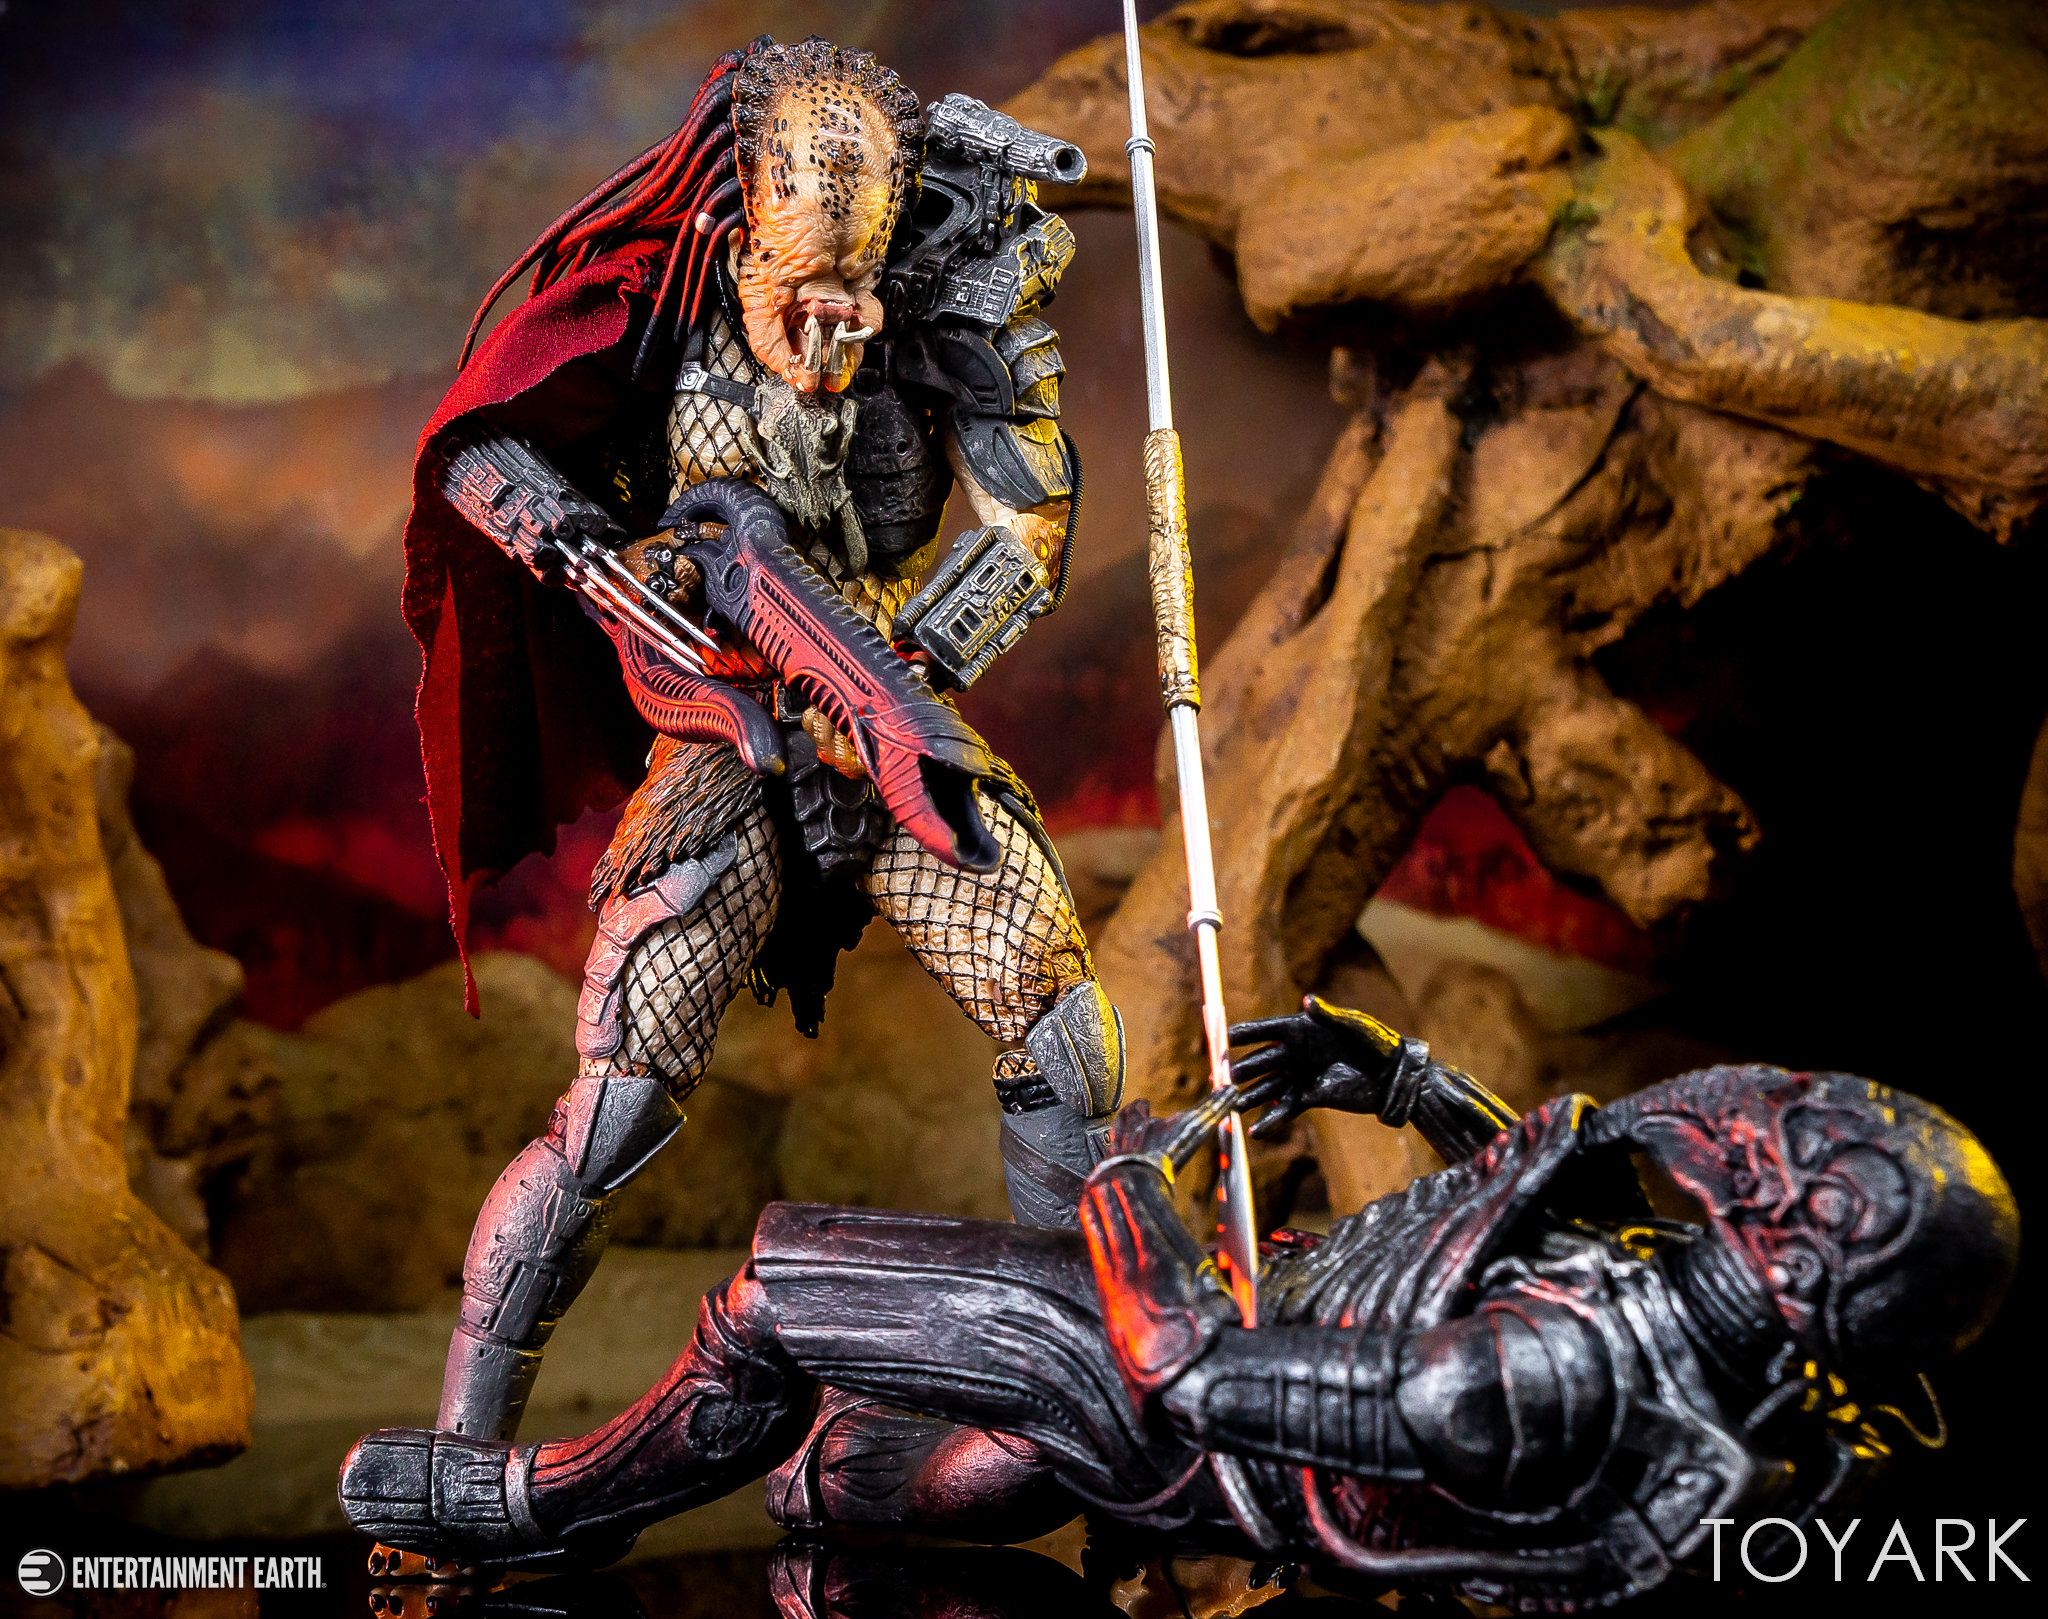 https://news.toyark.com/wp-content/uploads/sites/4/2018/11/NECA-Ultimate-Ahab-Predator-046.jpg